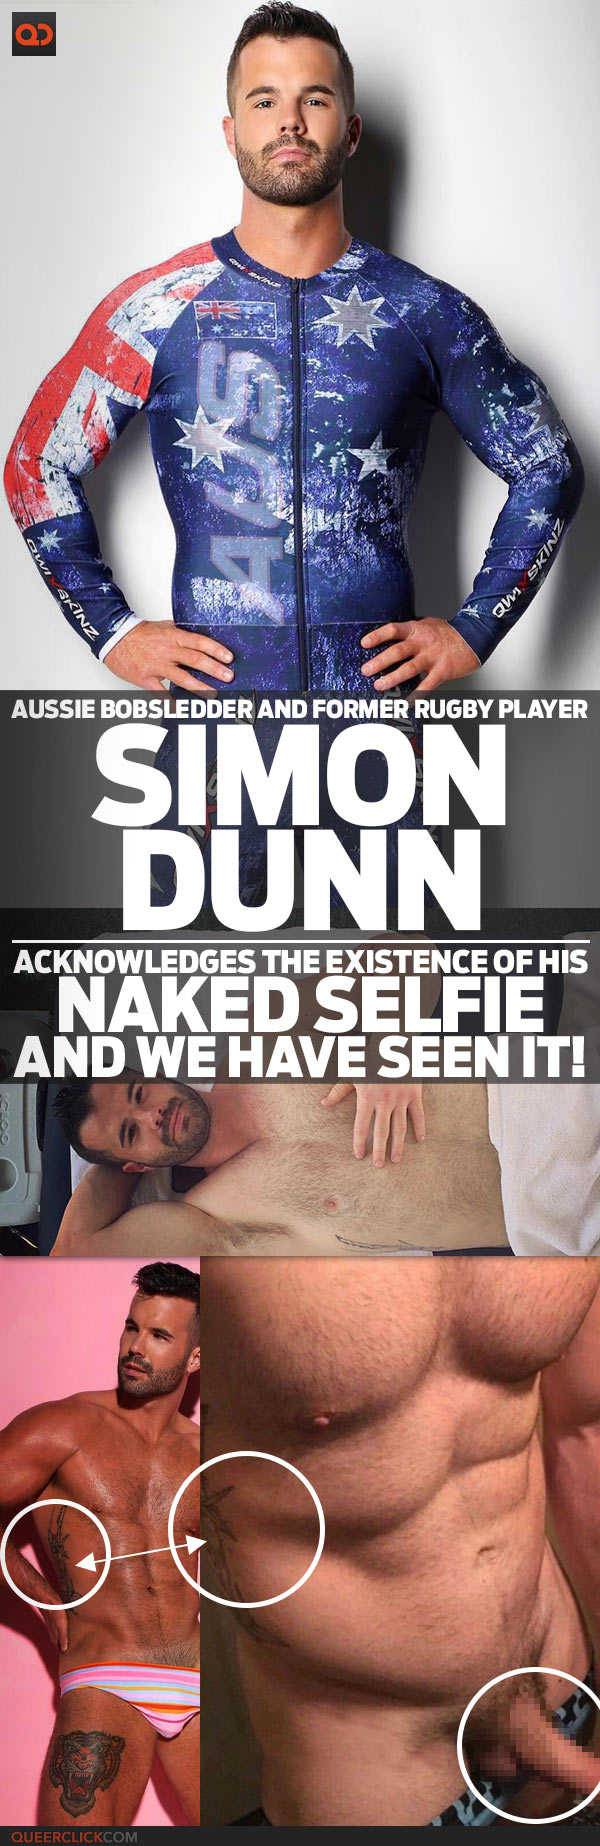 Simon Dunn, Aussie Bobsledder And Former Rugby Player, Acknowledges The Existence Of His Naked Selfie And We Have Seen It!